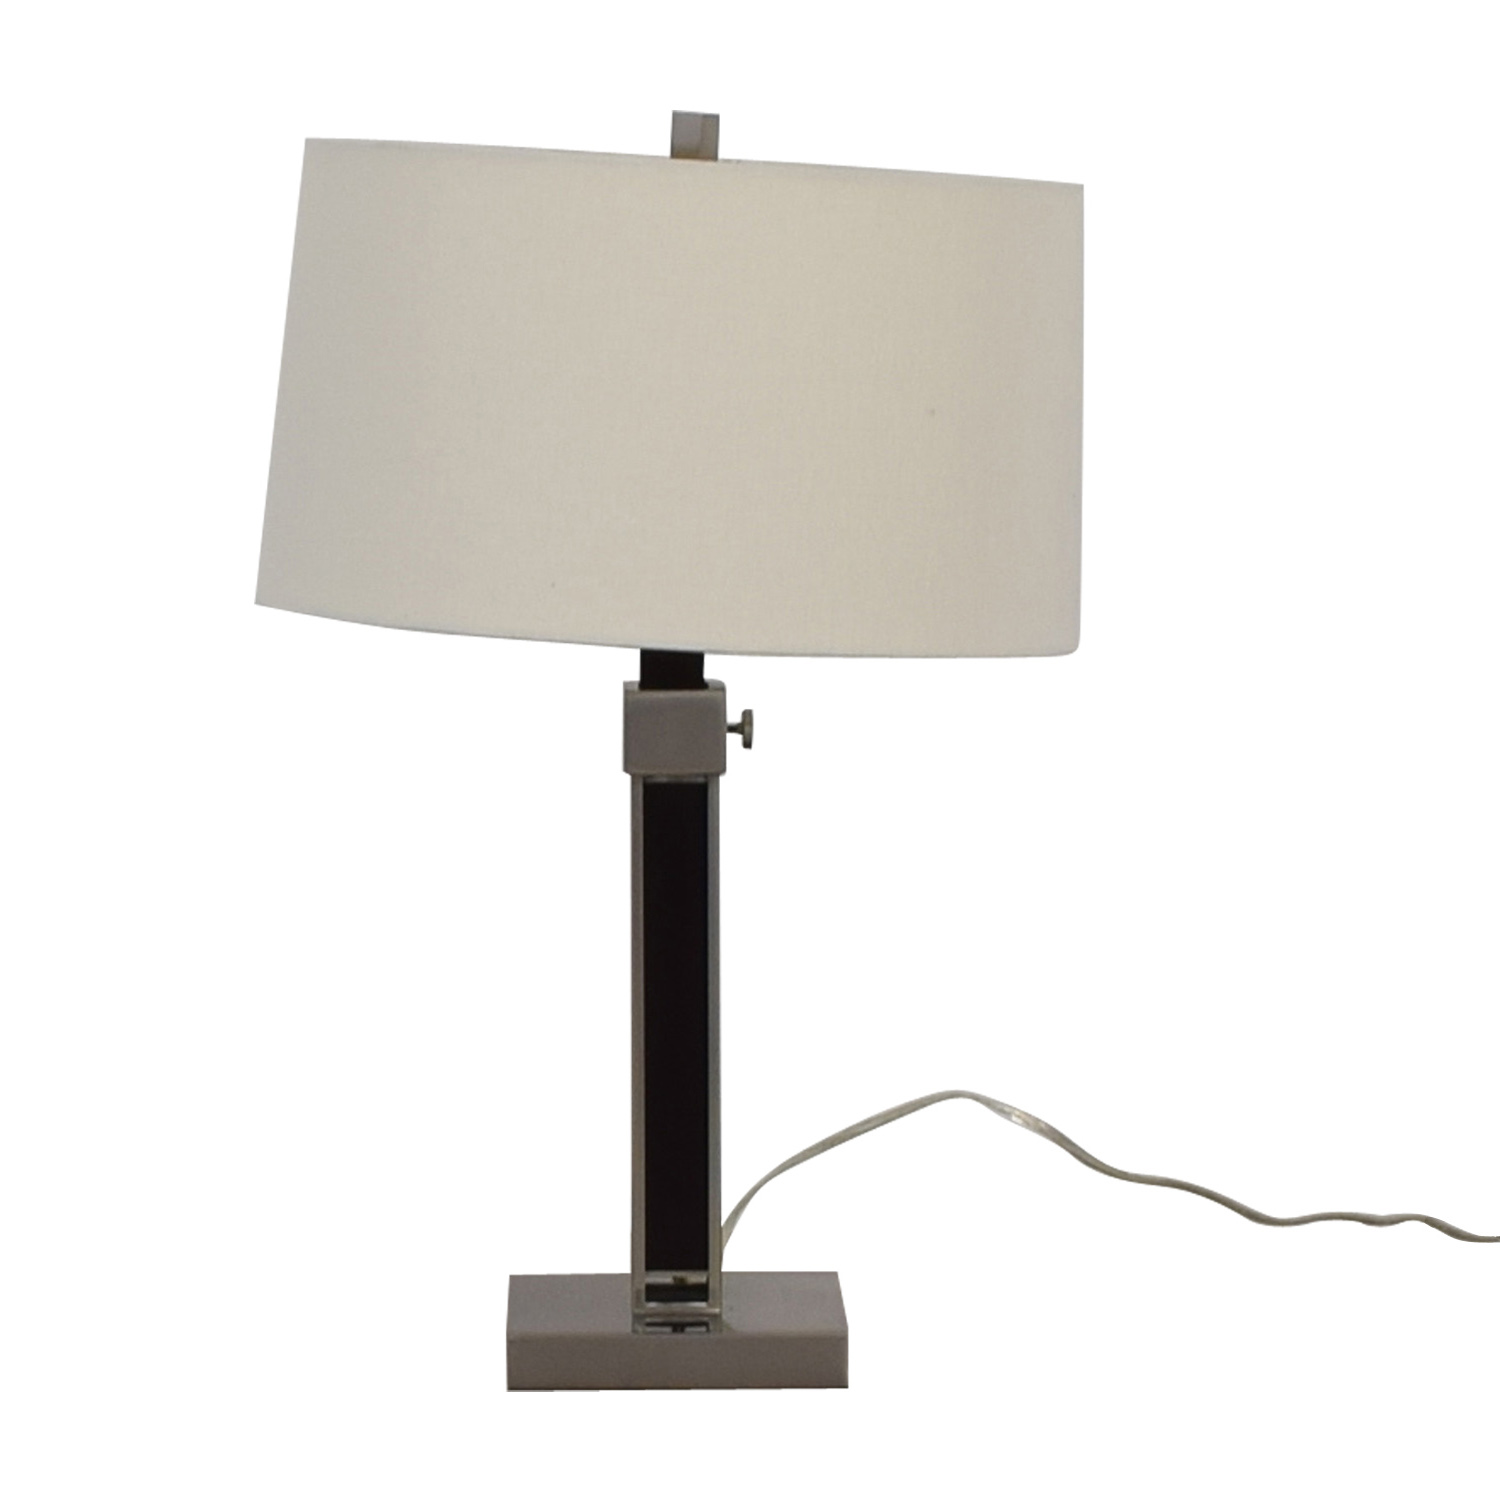 Lamps Online 80 Off Crate Barrel Crate Barrel Denley Table Lamp Decor